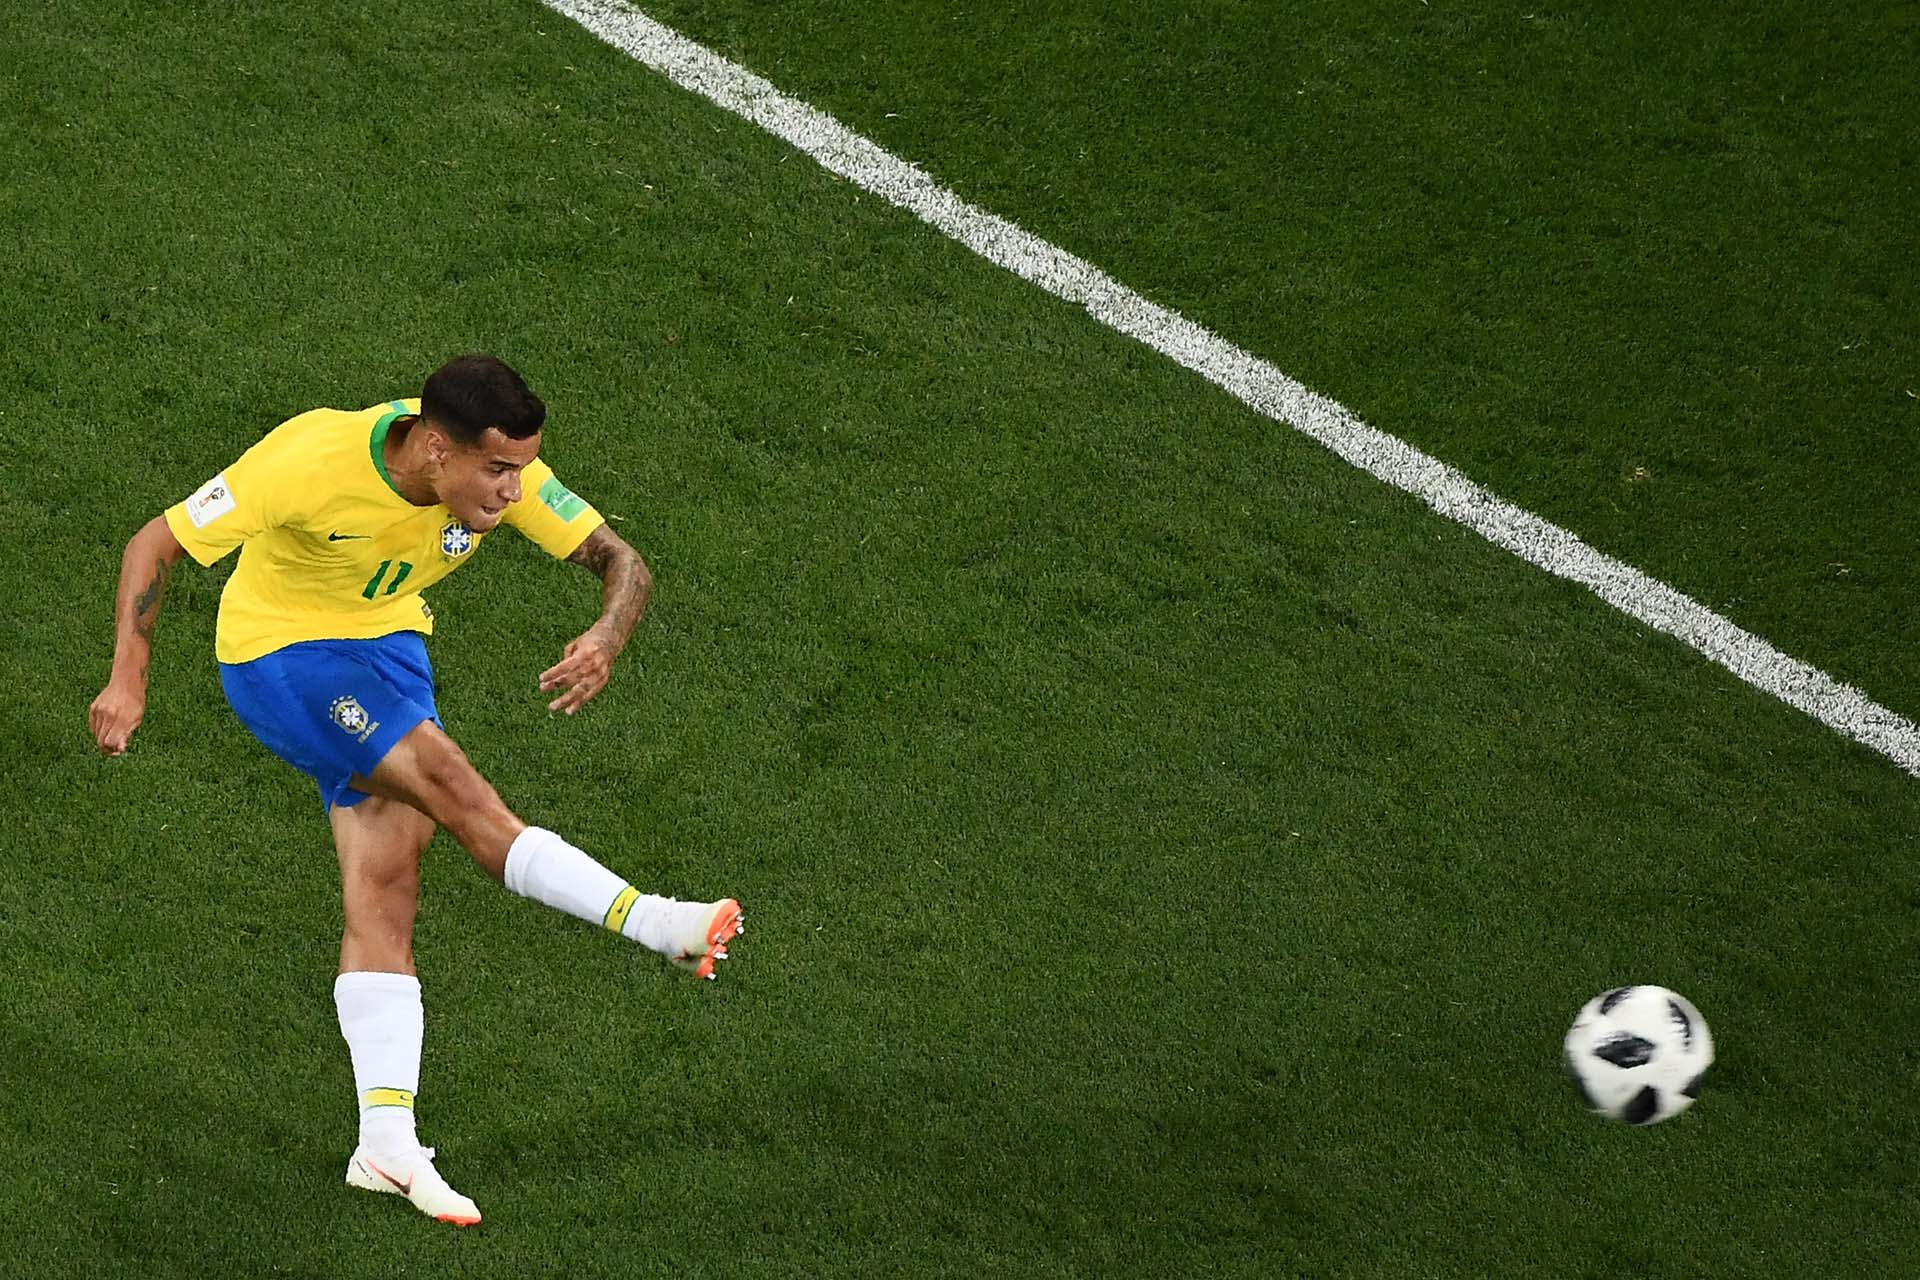 Brazil's forward Philippe Coutinho kicks and scores during the Russia 2018 World Cup Group E football match between Brazil and Switzerland at the Rostov Arena in Rostov-On-Don on June 17, 2018. / AFP PHOTO / Jewel SAMAD / RESTRICTED TO EDITORIAL USE - NO MOBILE PUSH ALERTS/DOWNLOADS